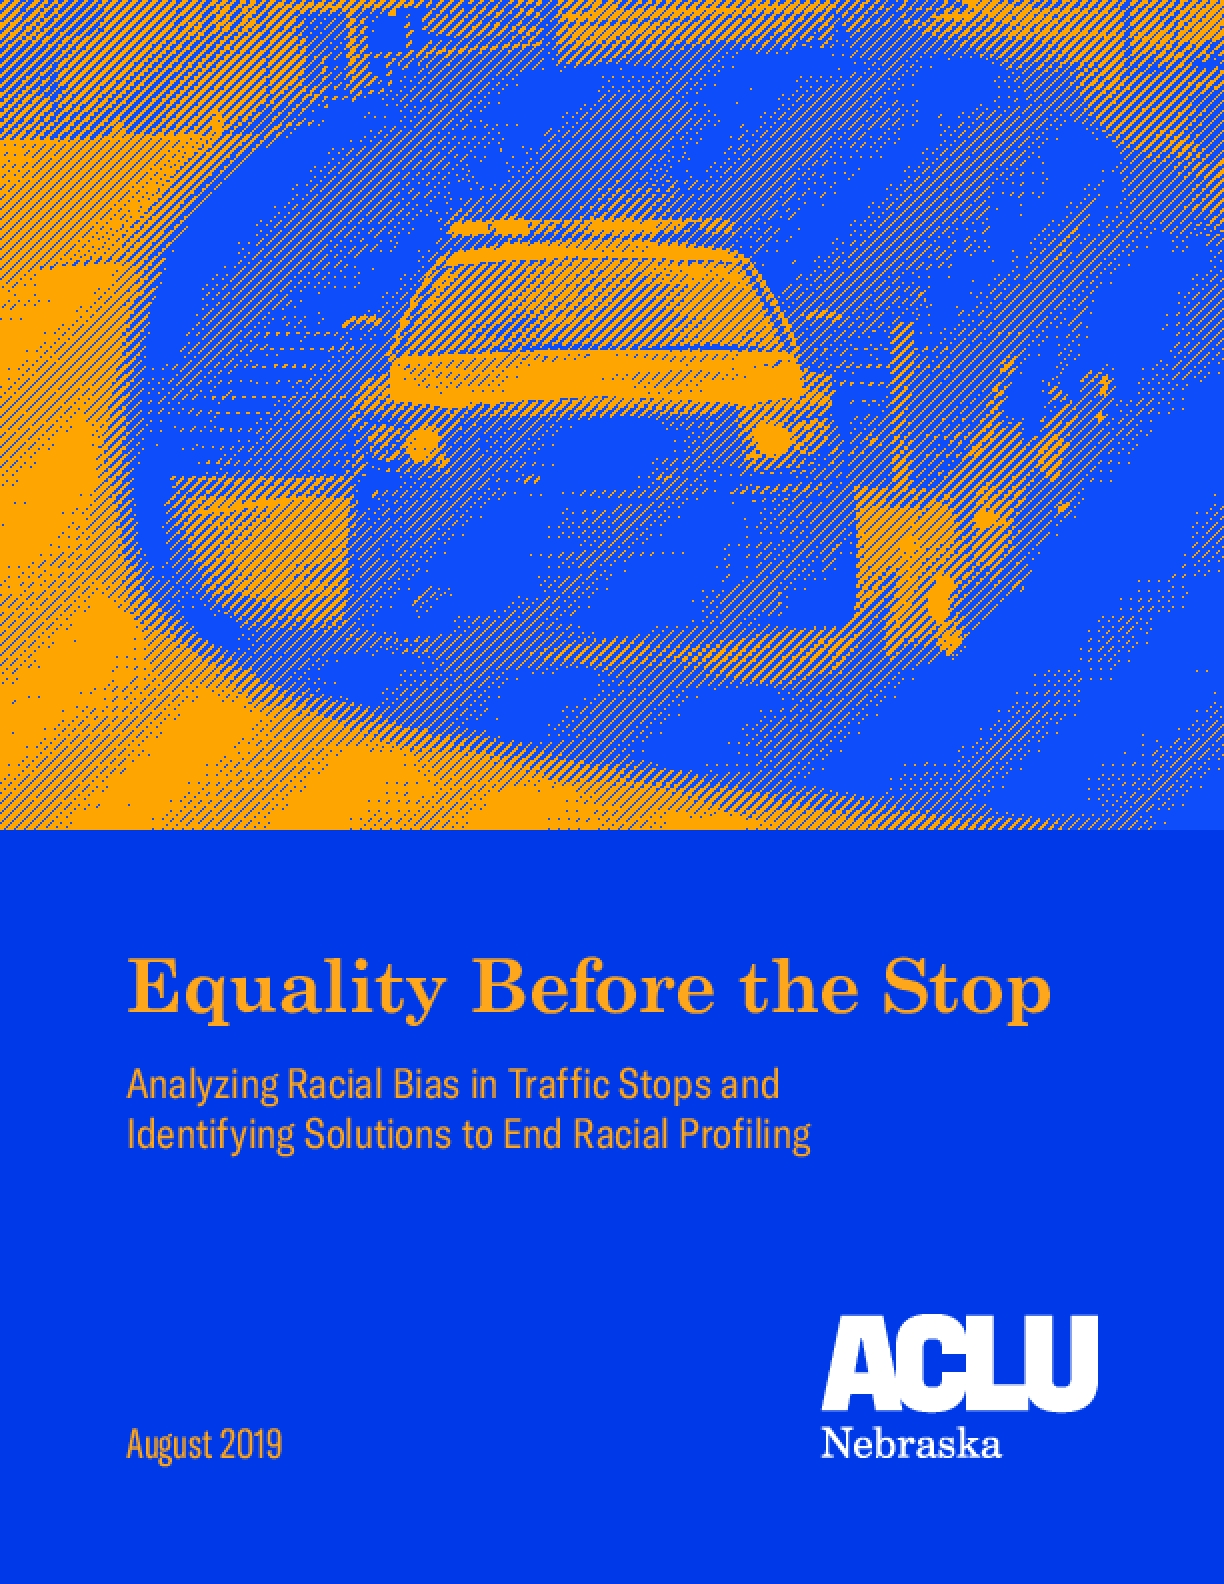 Equality Before the Stop: Analyzing Racial Bias in Traffic Stops and Identifying Solutions to End Racial Profiling